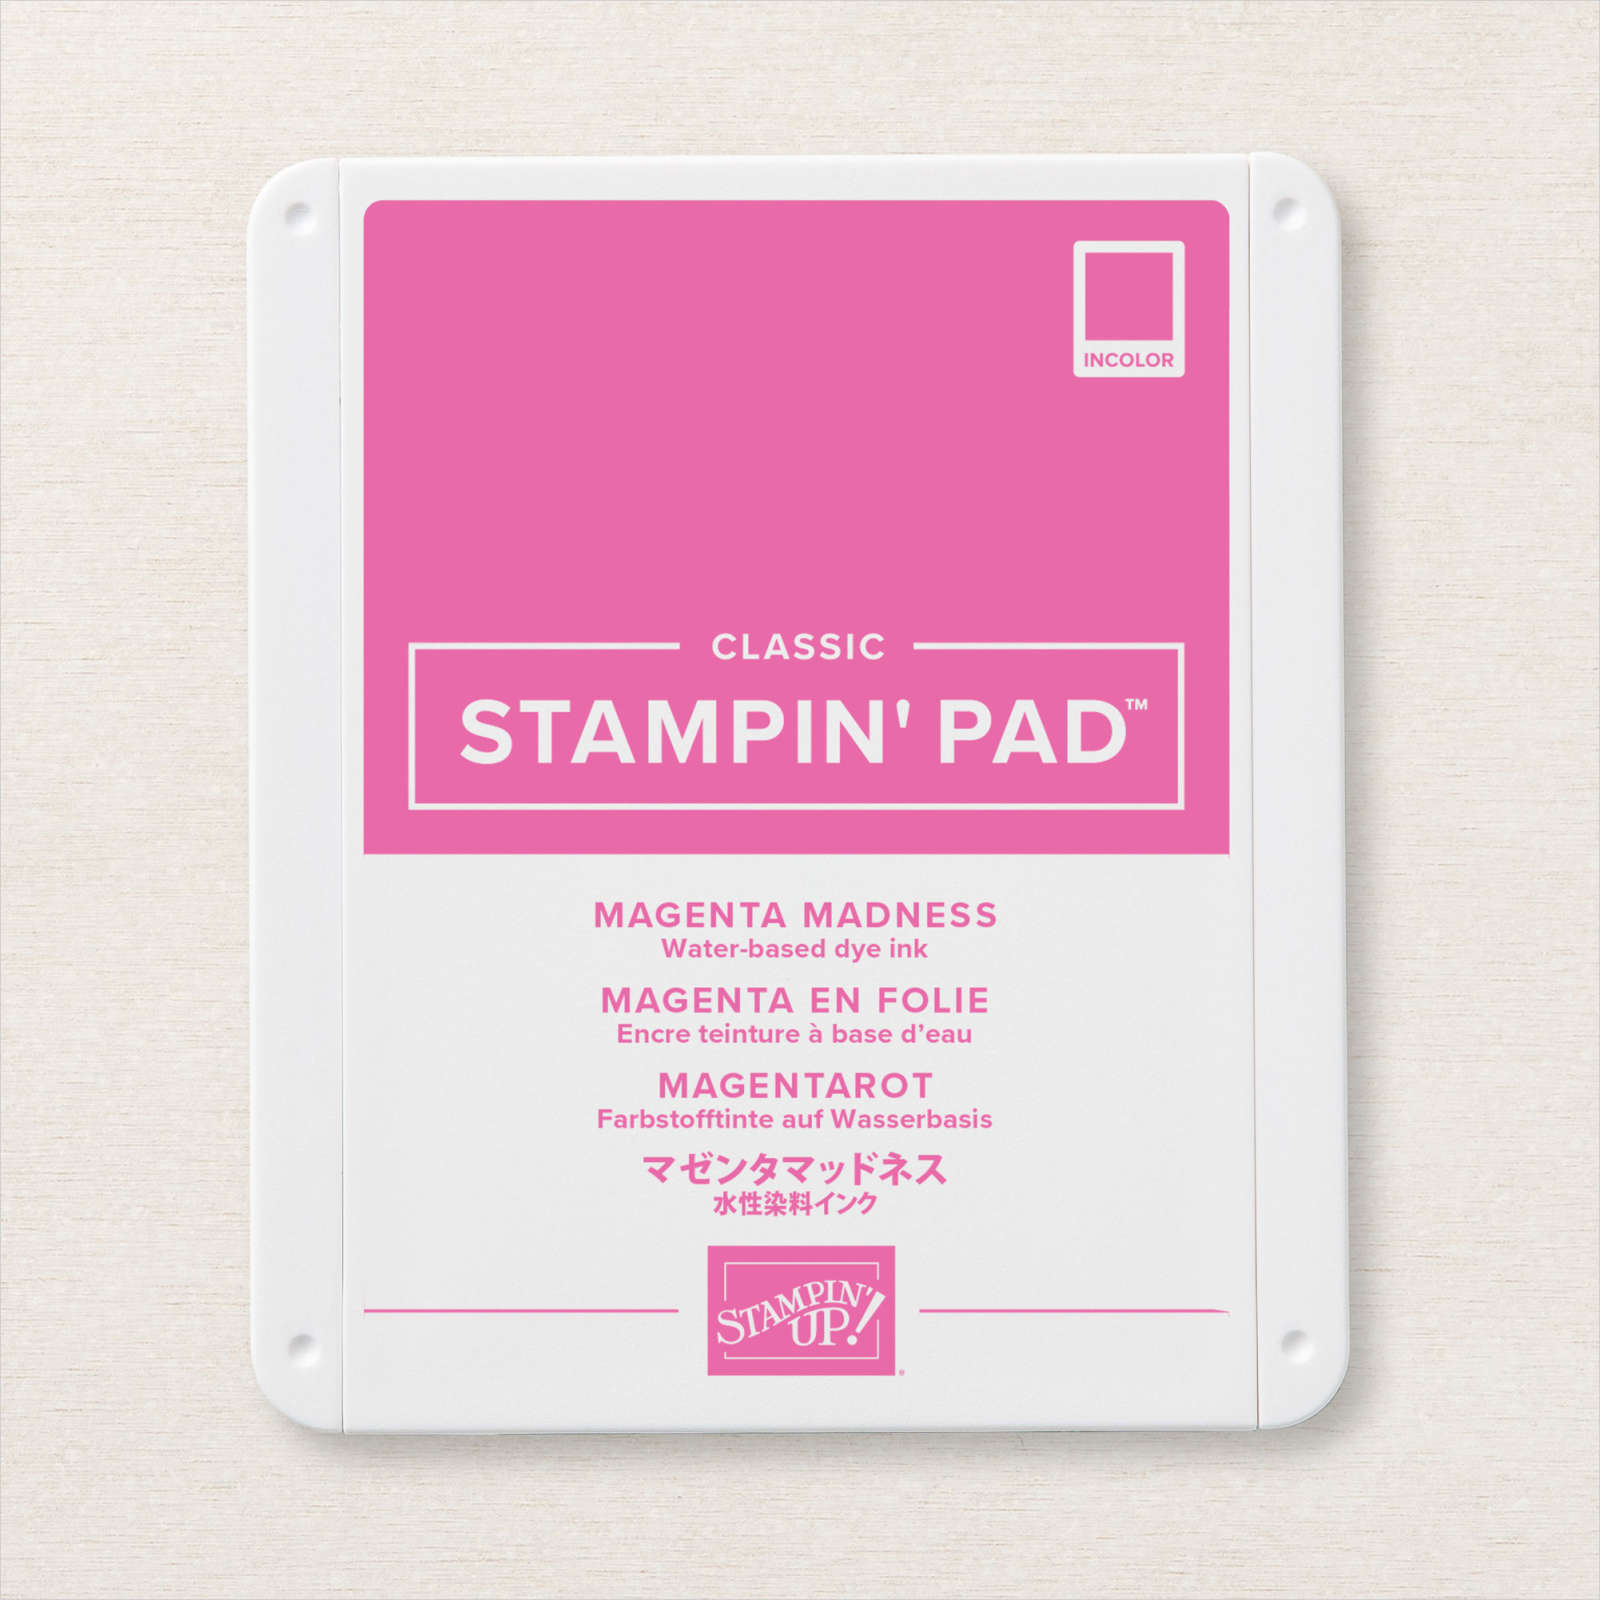 MAGENTA MADNESS CLASSIC STAMPIN' PAD